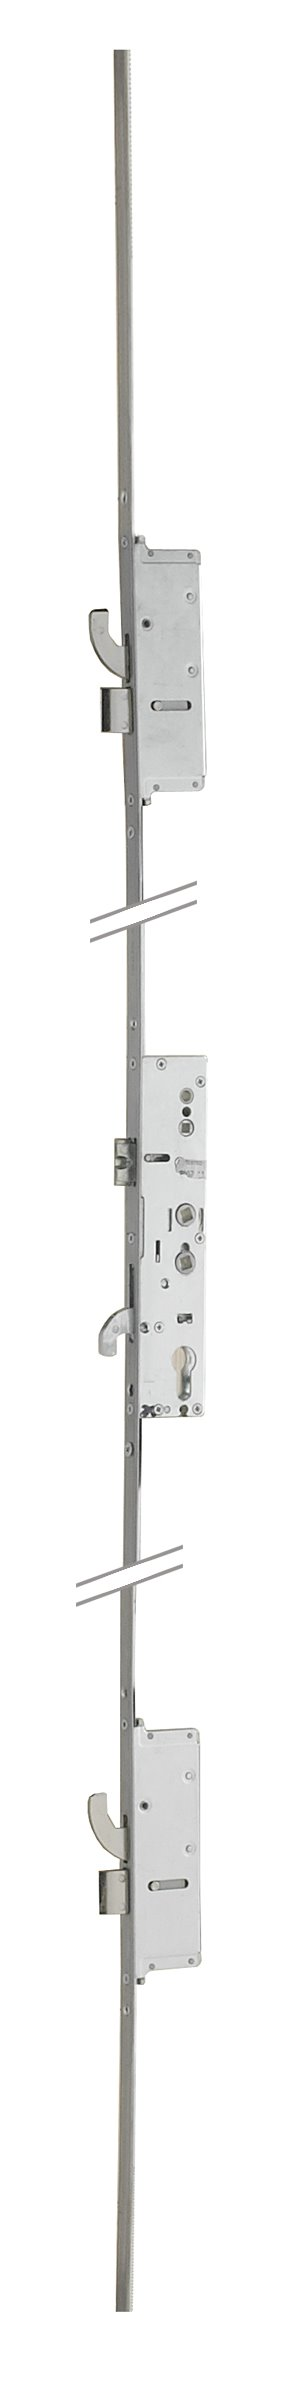 PVC Locks Millenco